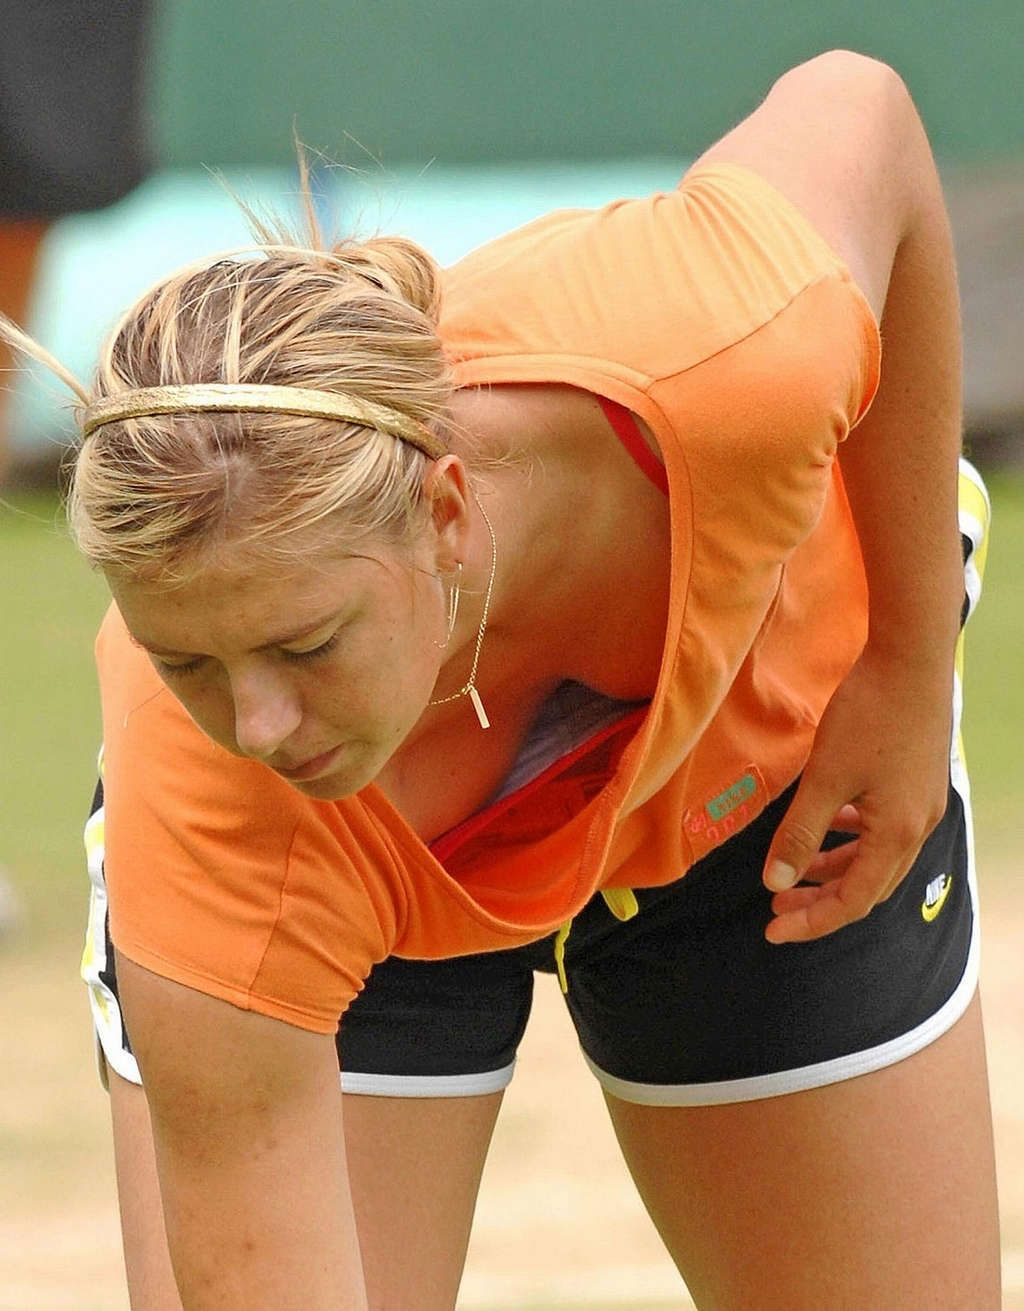 Maria Sharapova Nipple Slips Maria Sharapova Nipple Slips And Downblouse On Court Paparazzi